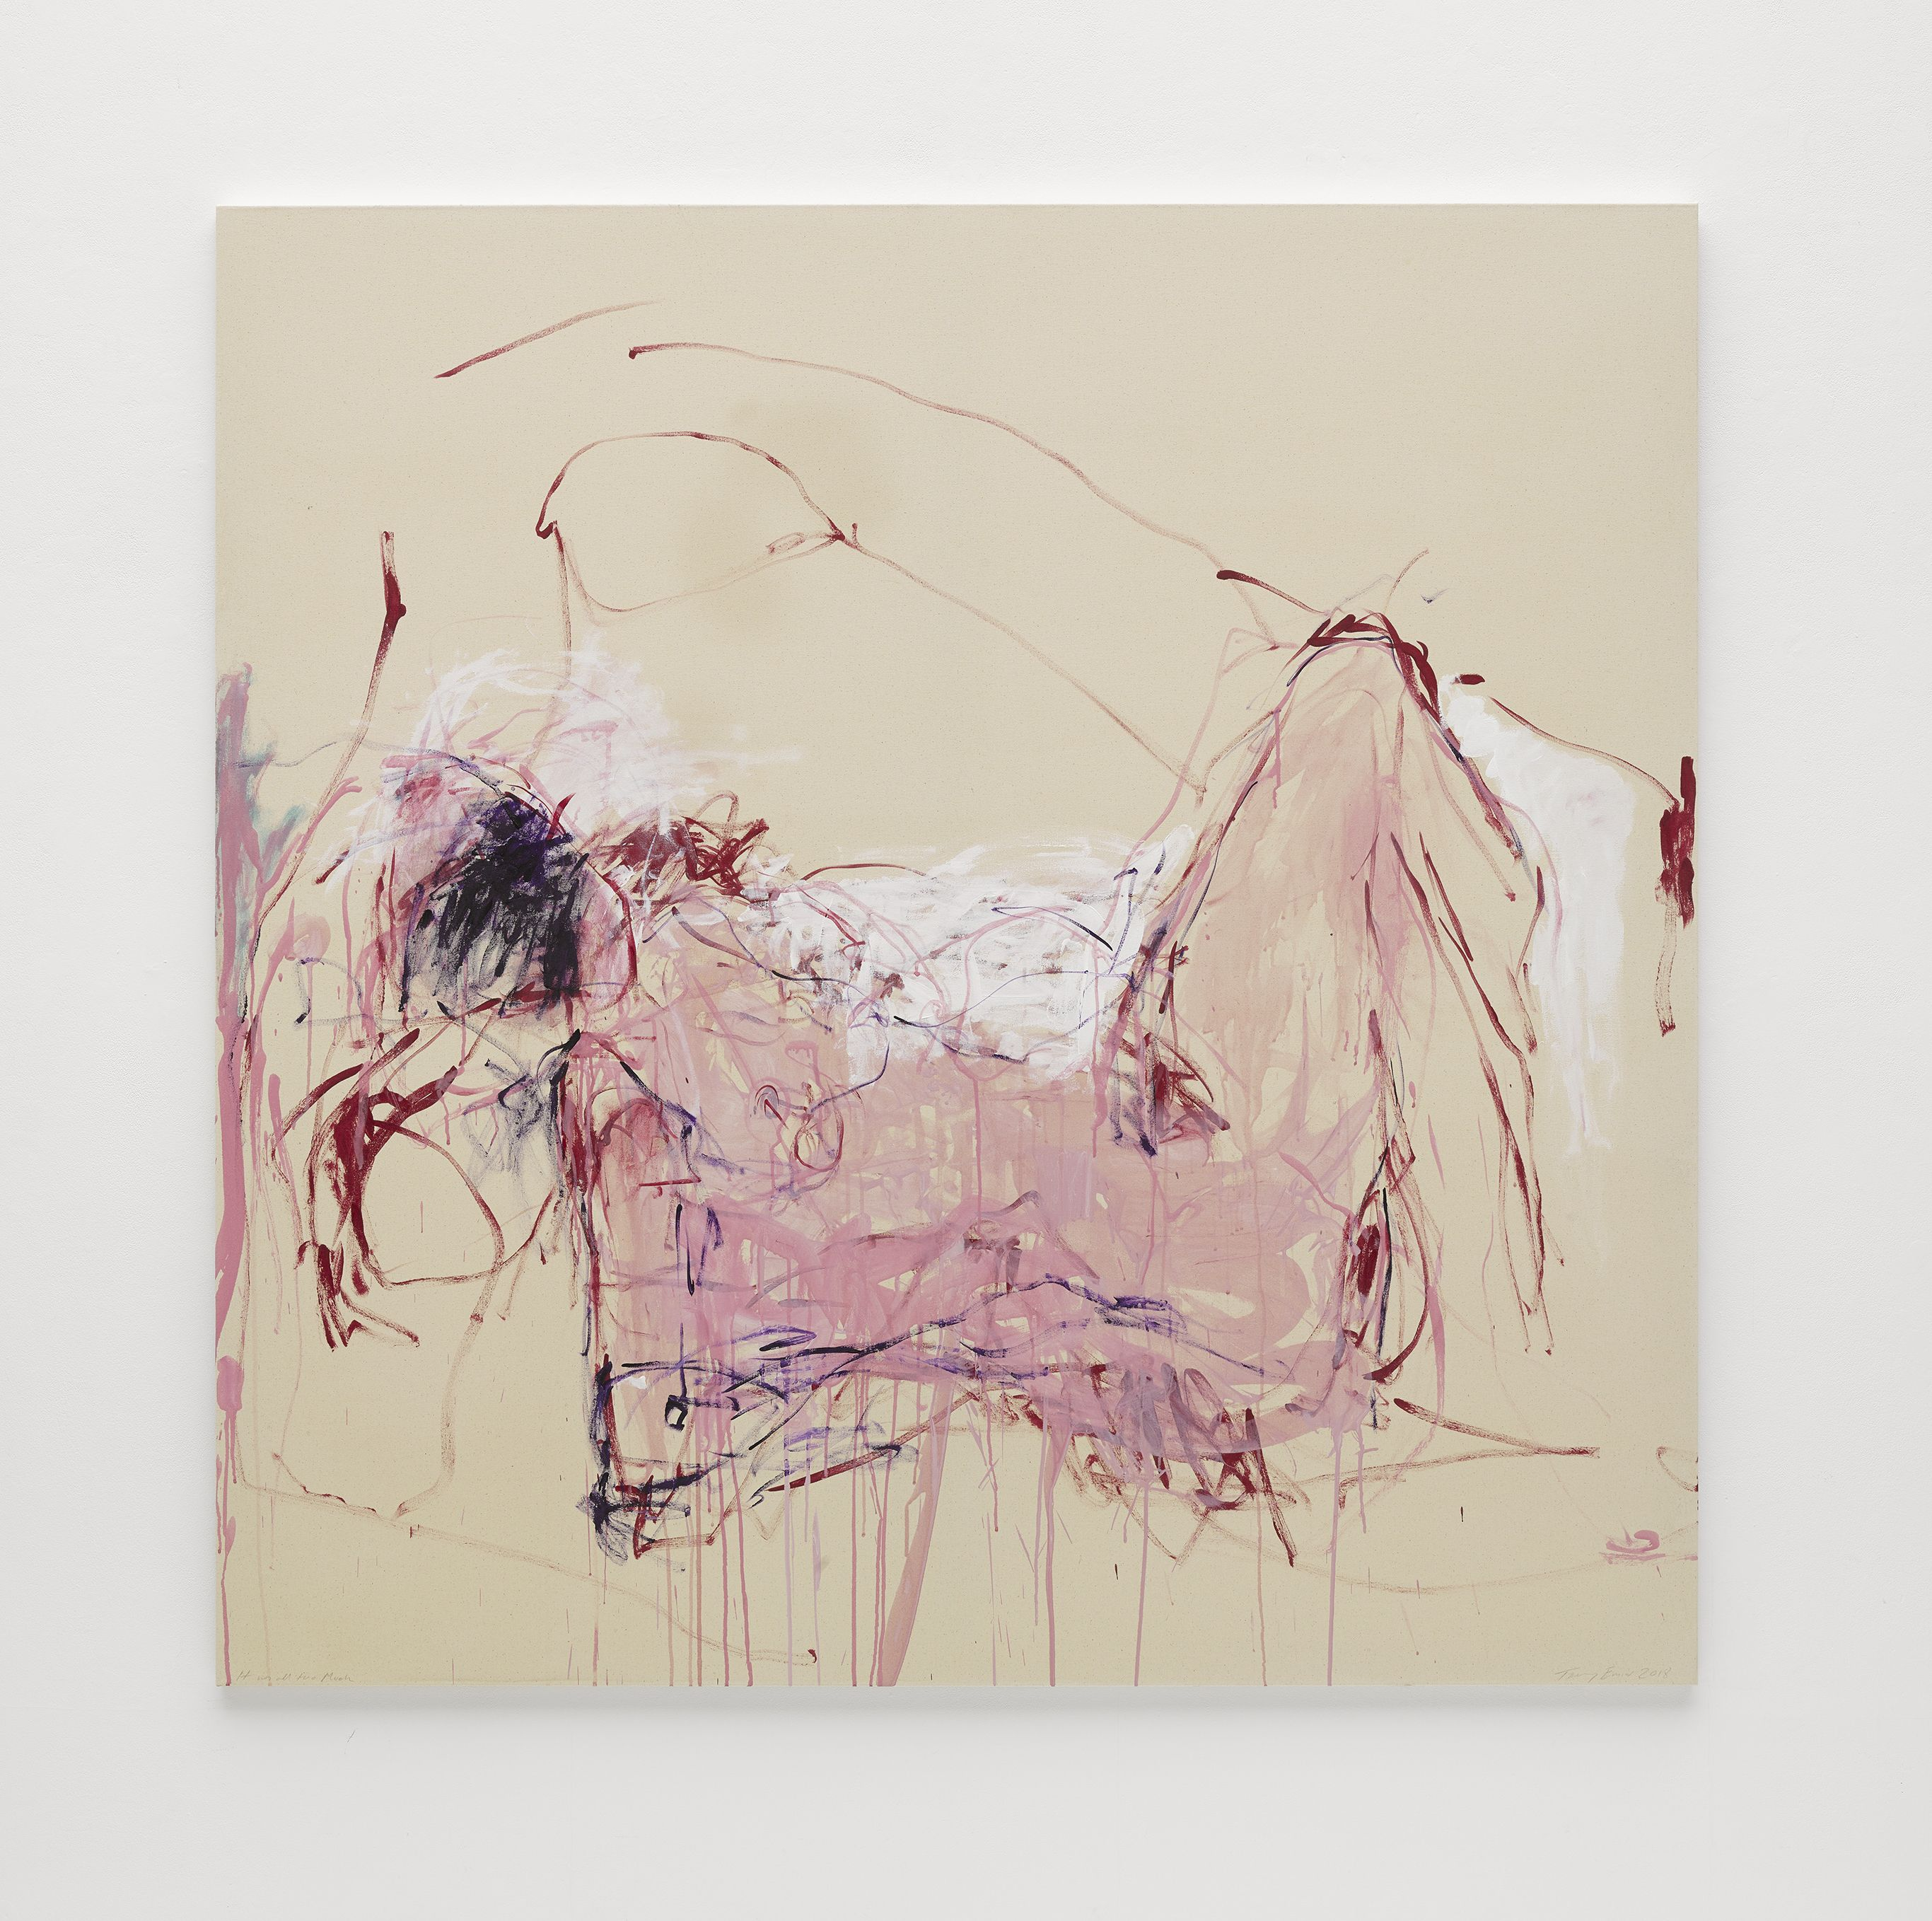 Tracey Emin's emotional new exhibition